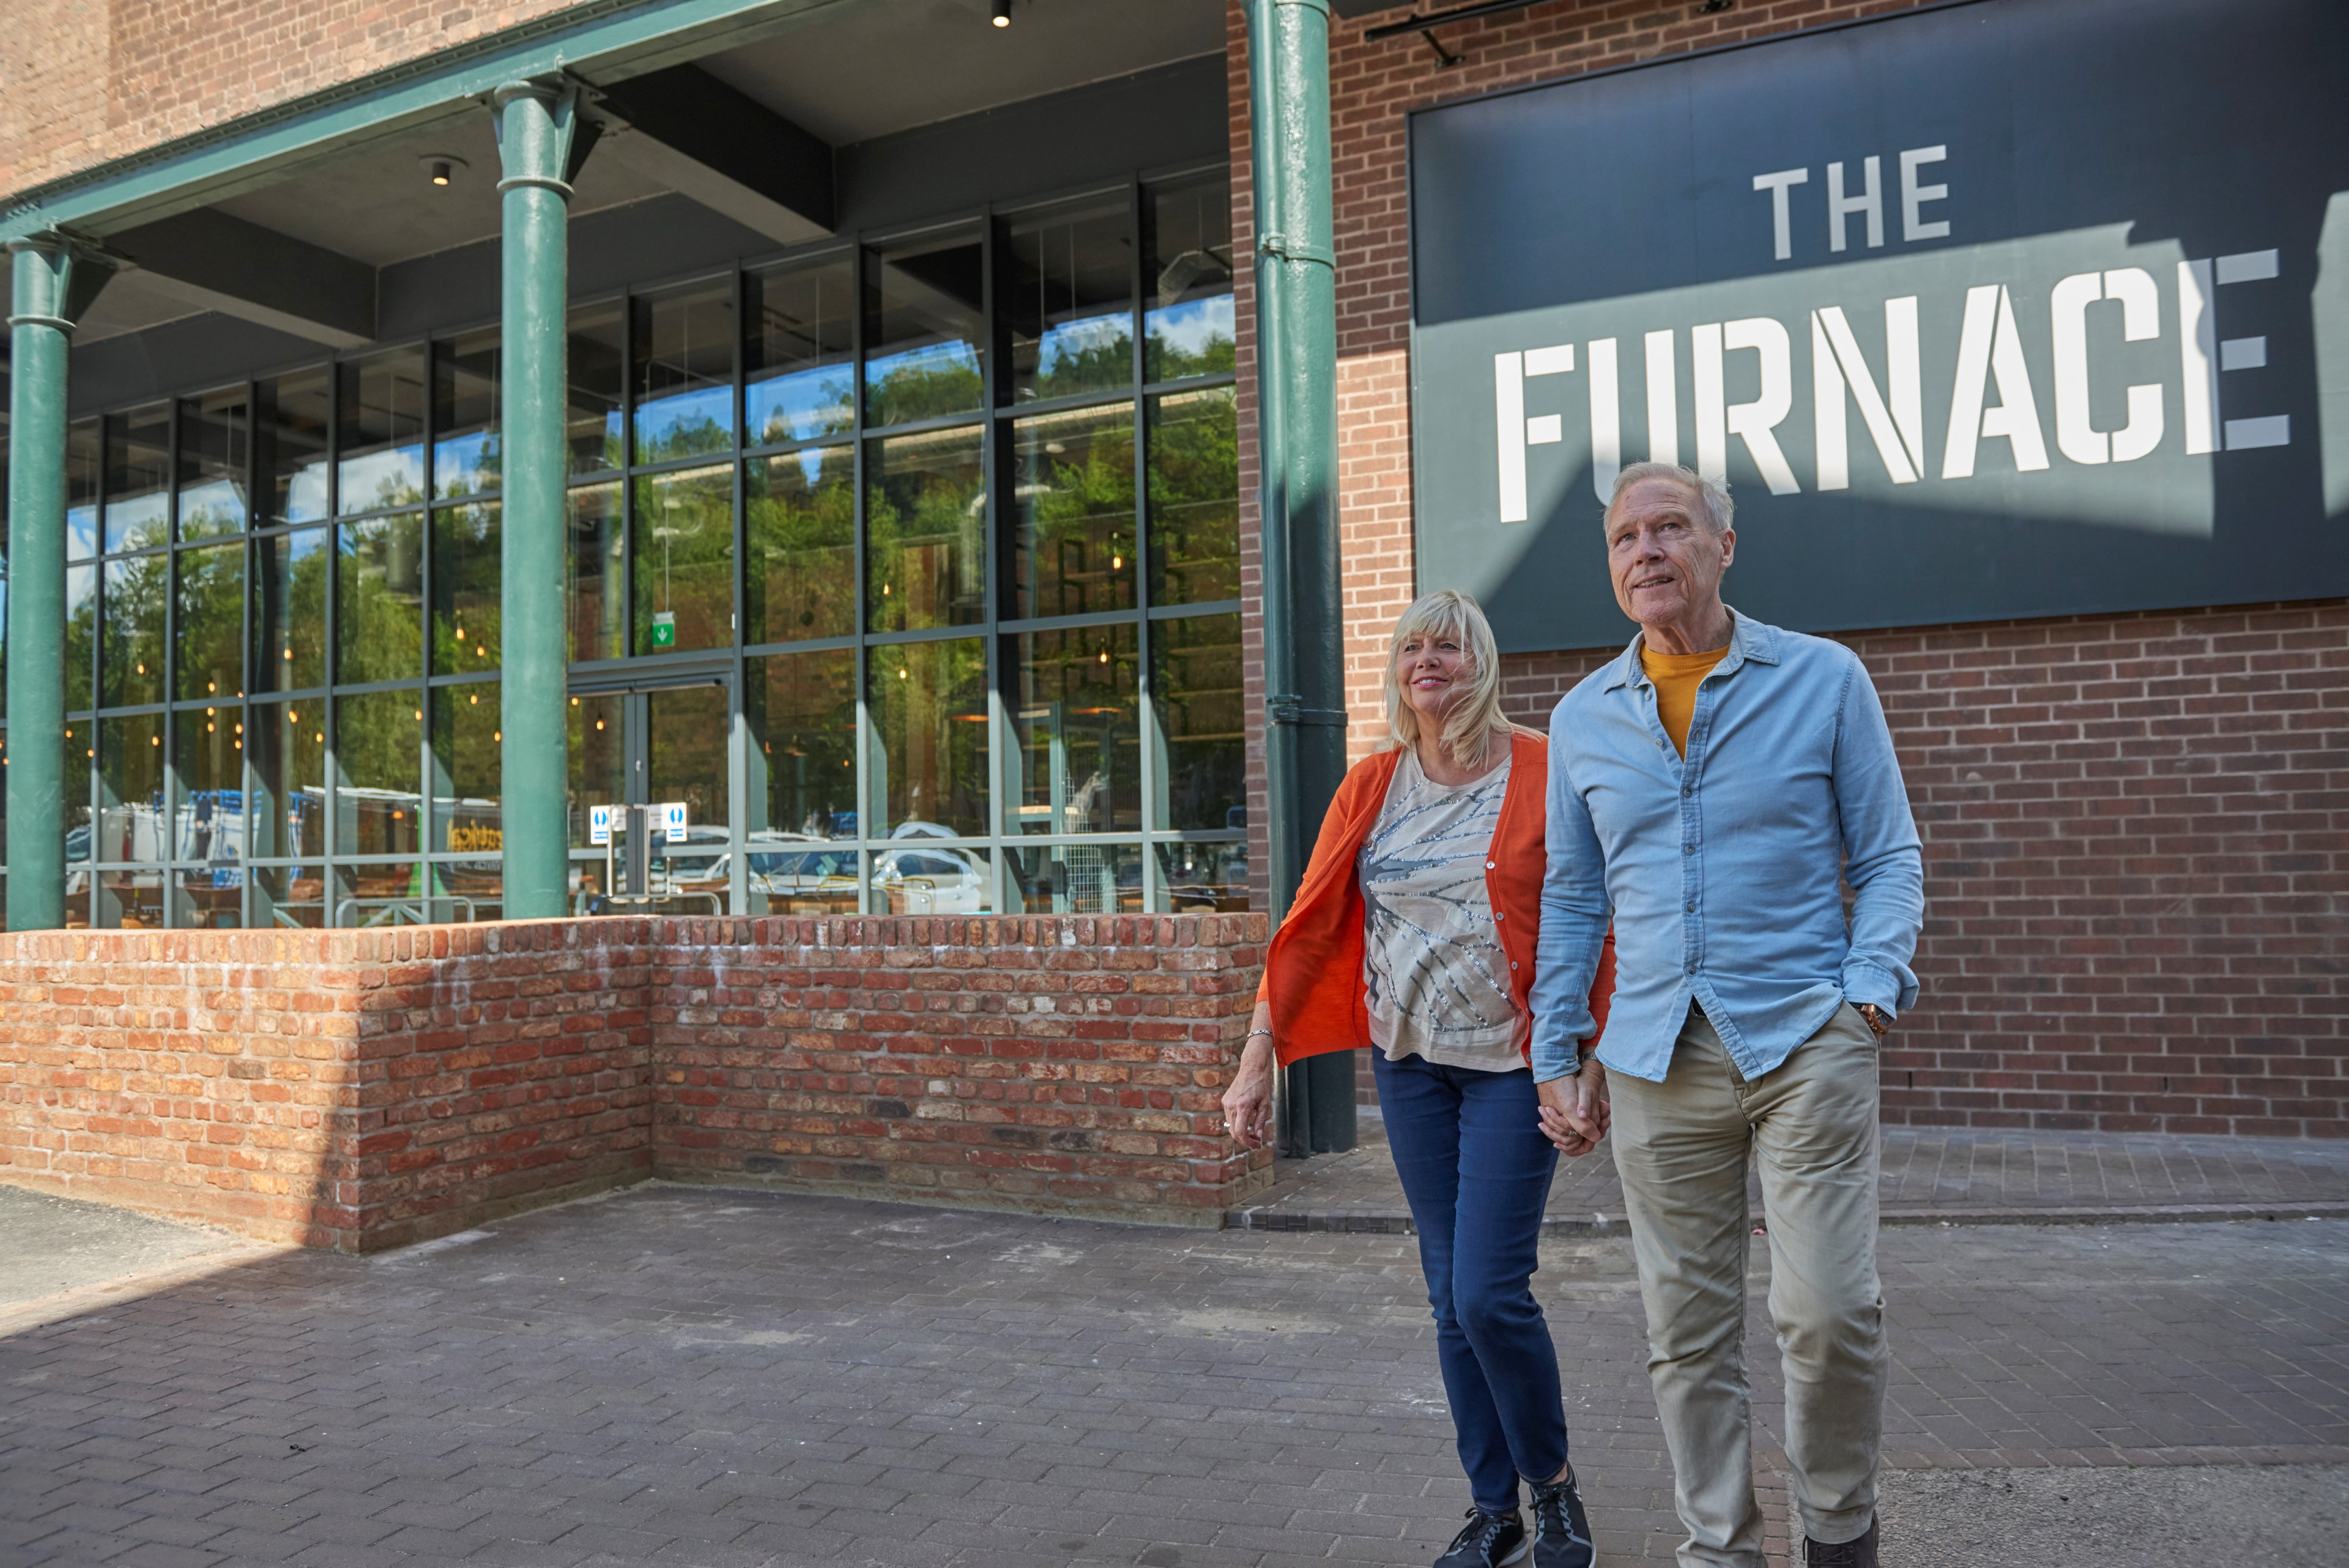 Furnace Kitchen Fires Back to Life